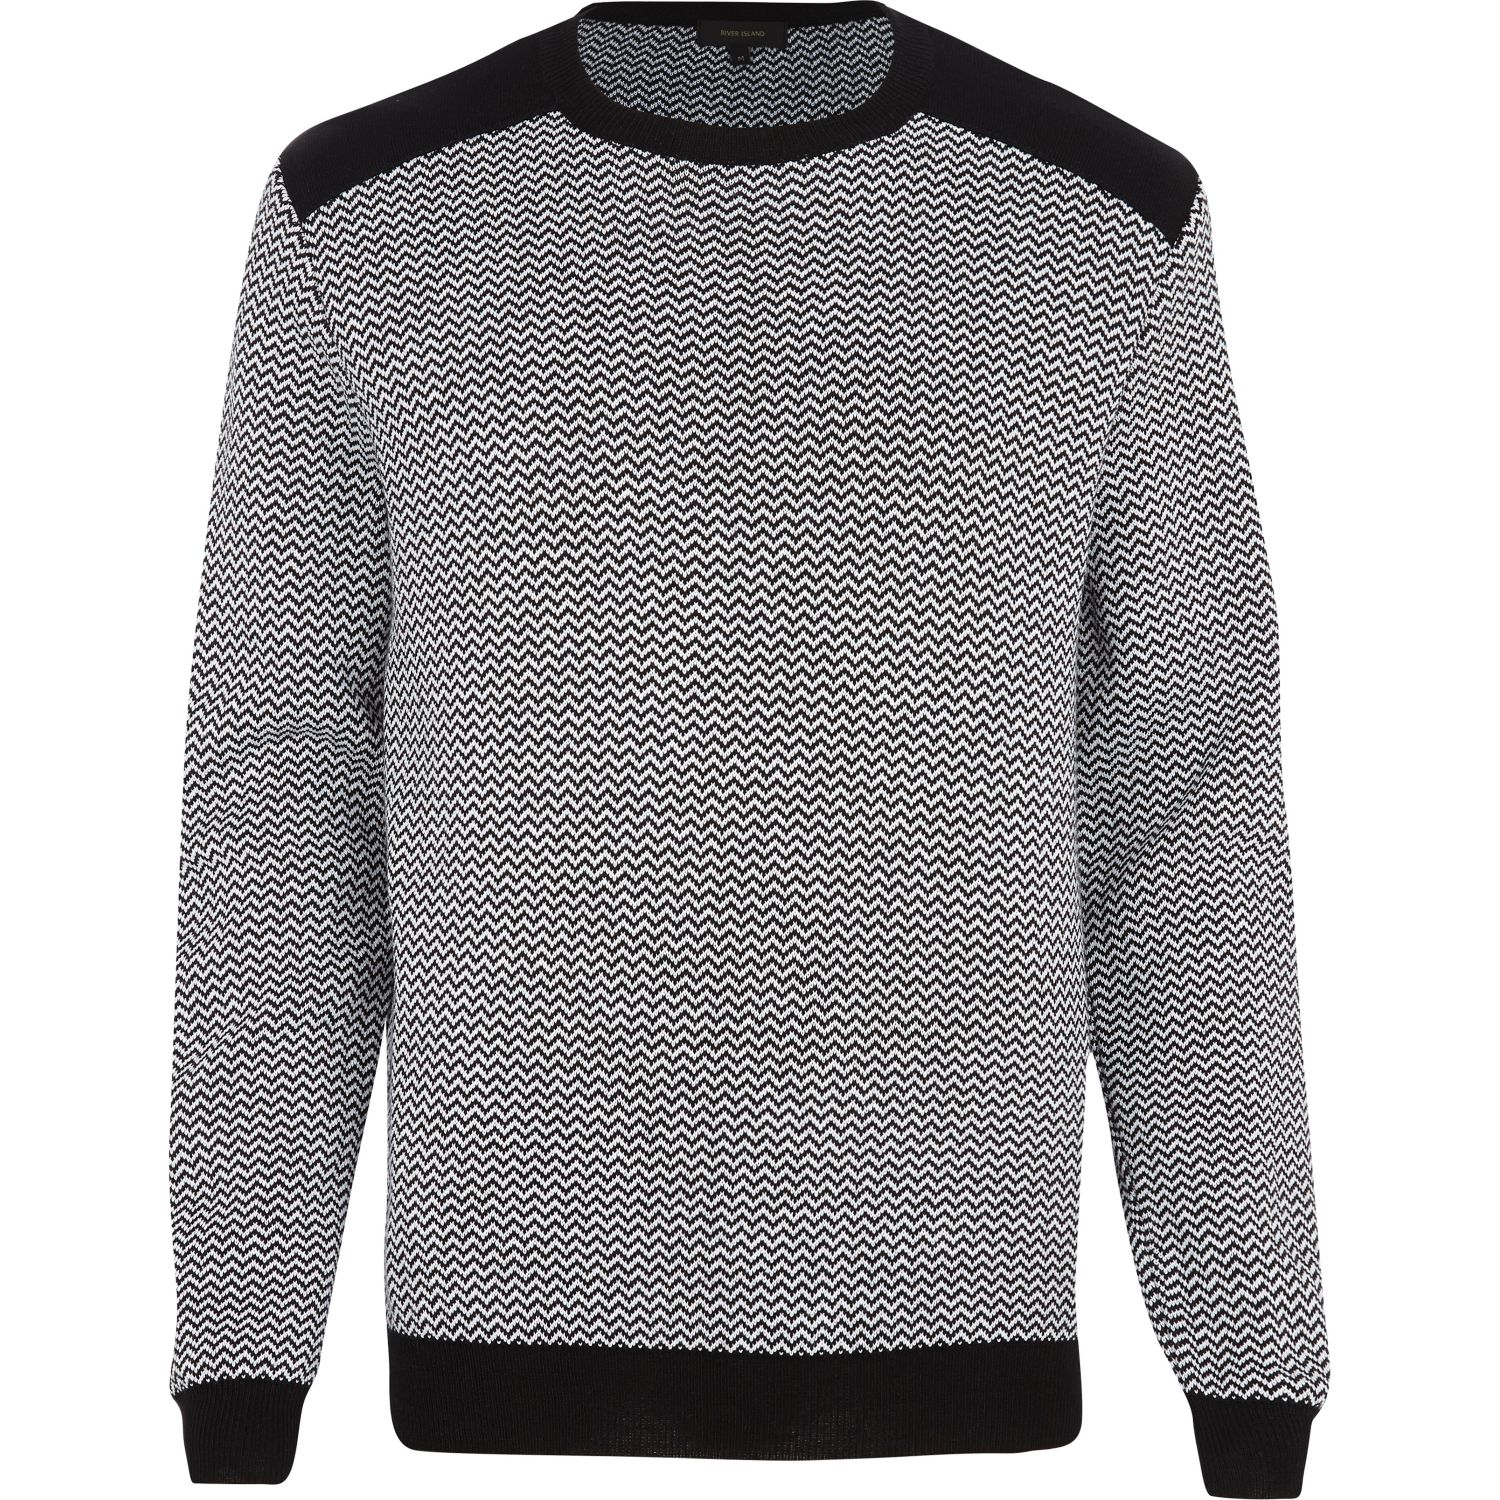 Mens Minimum Red jumper River Island Release Dates Authentic 26DNaba0R